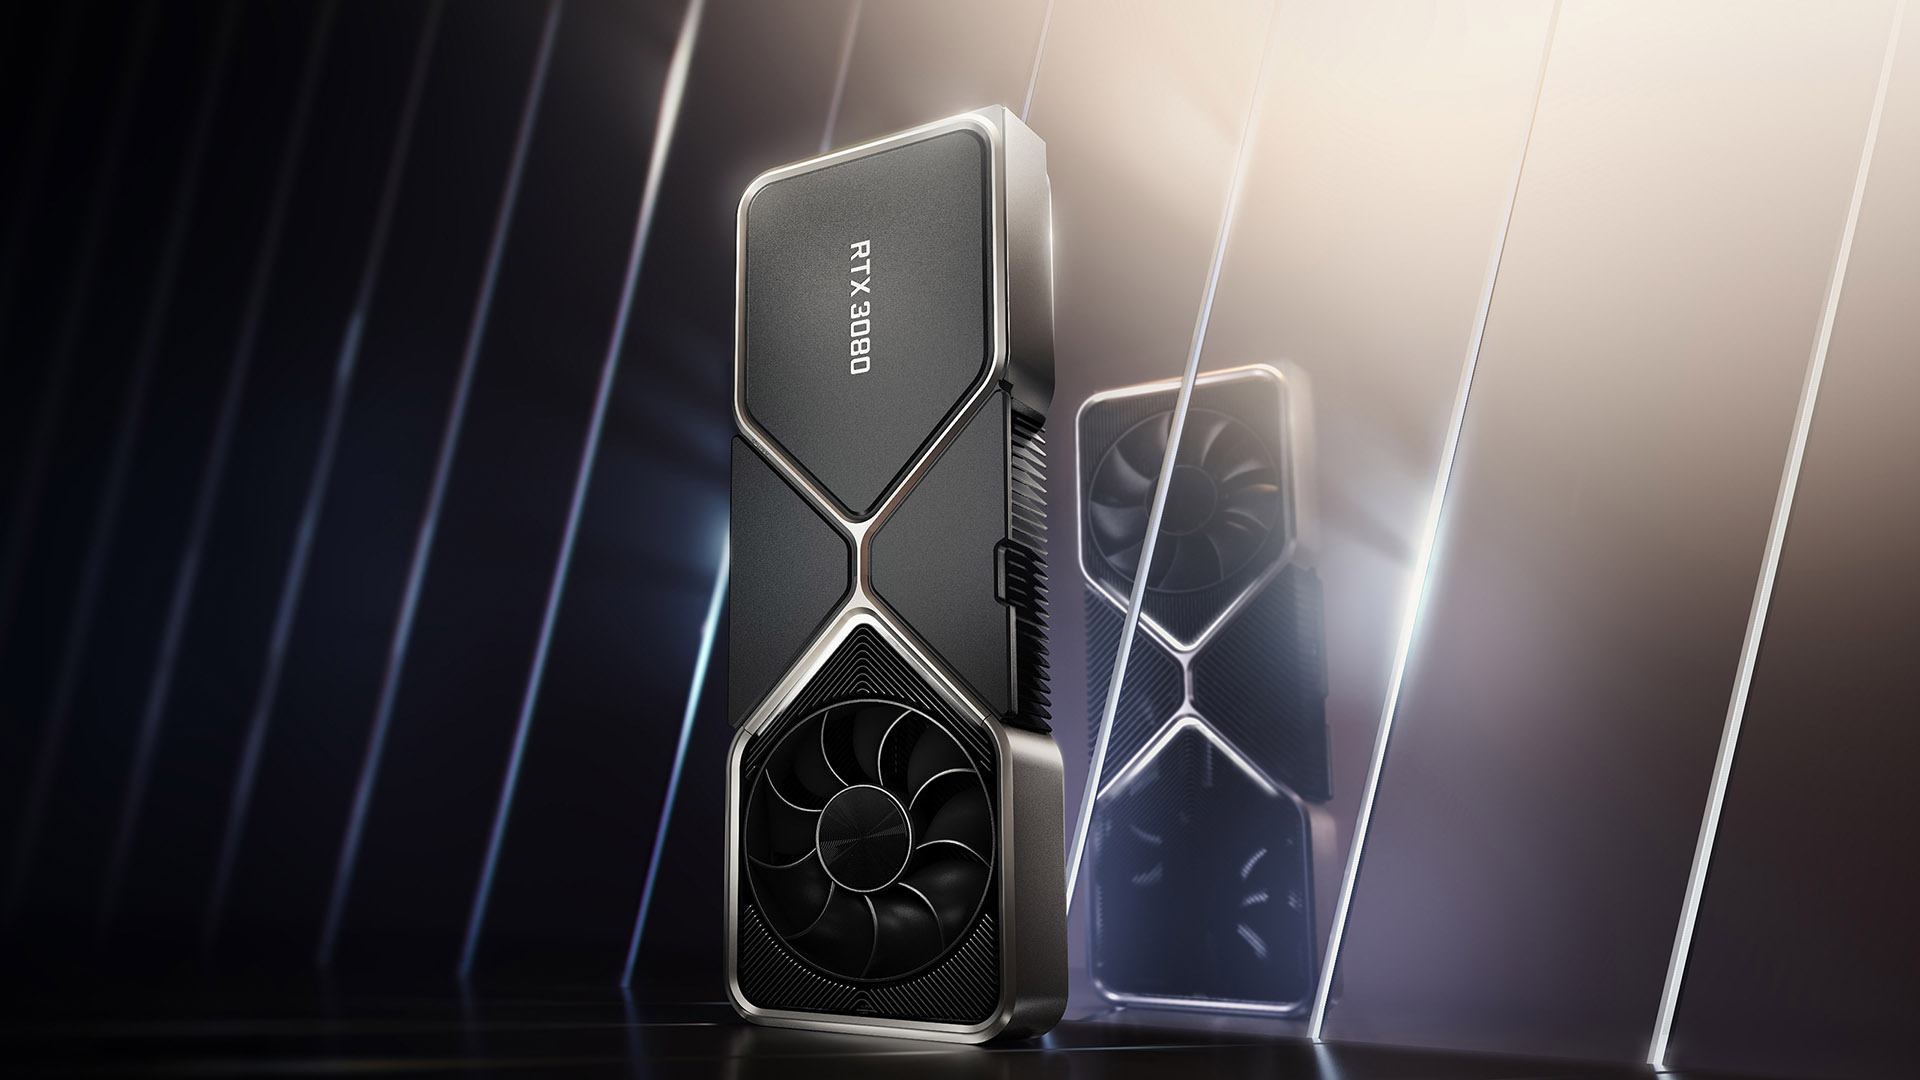 New Nvidia RTX 3080 graphics cards may release with stricter crypto mining limiters